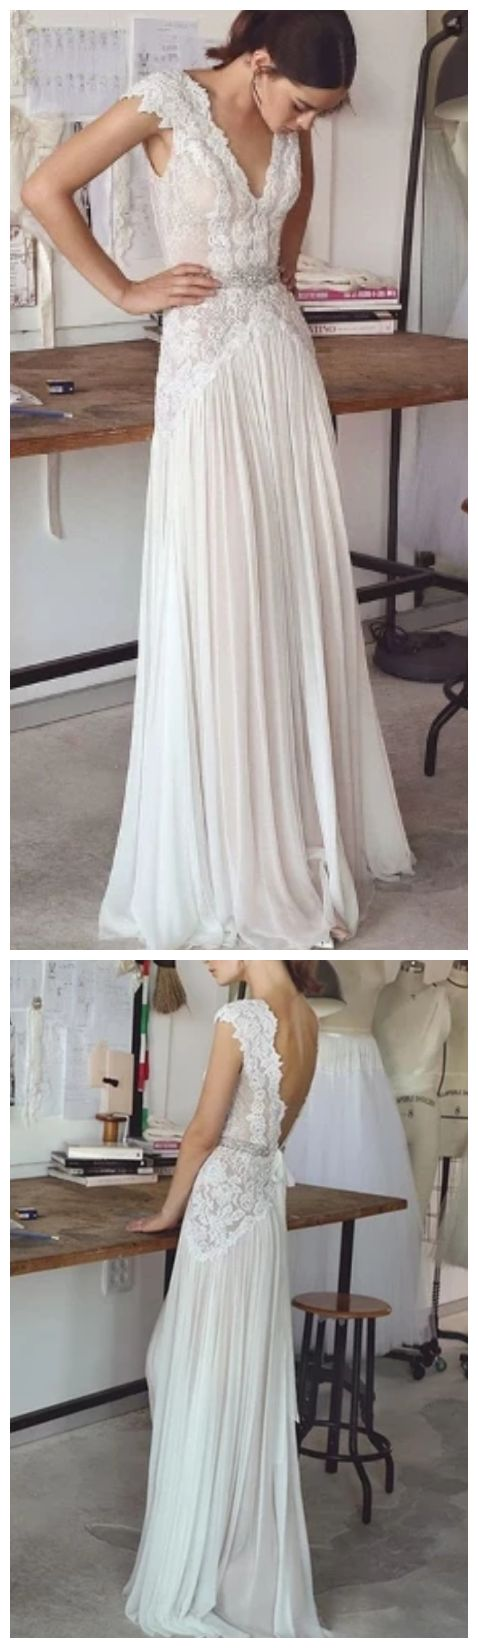 2019 Beach Boho Wedding Dresses Backless Bohemian Lace Tulle Bridal Dress Prom Gown